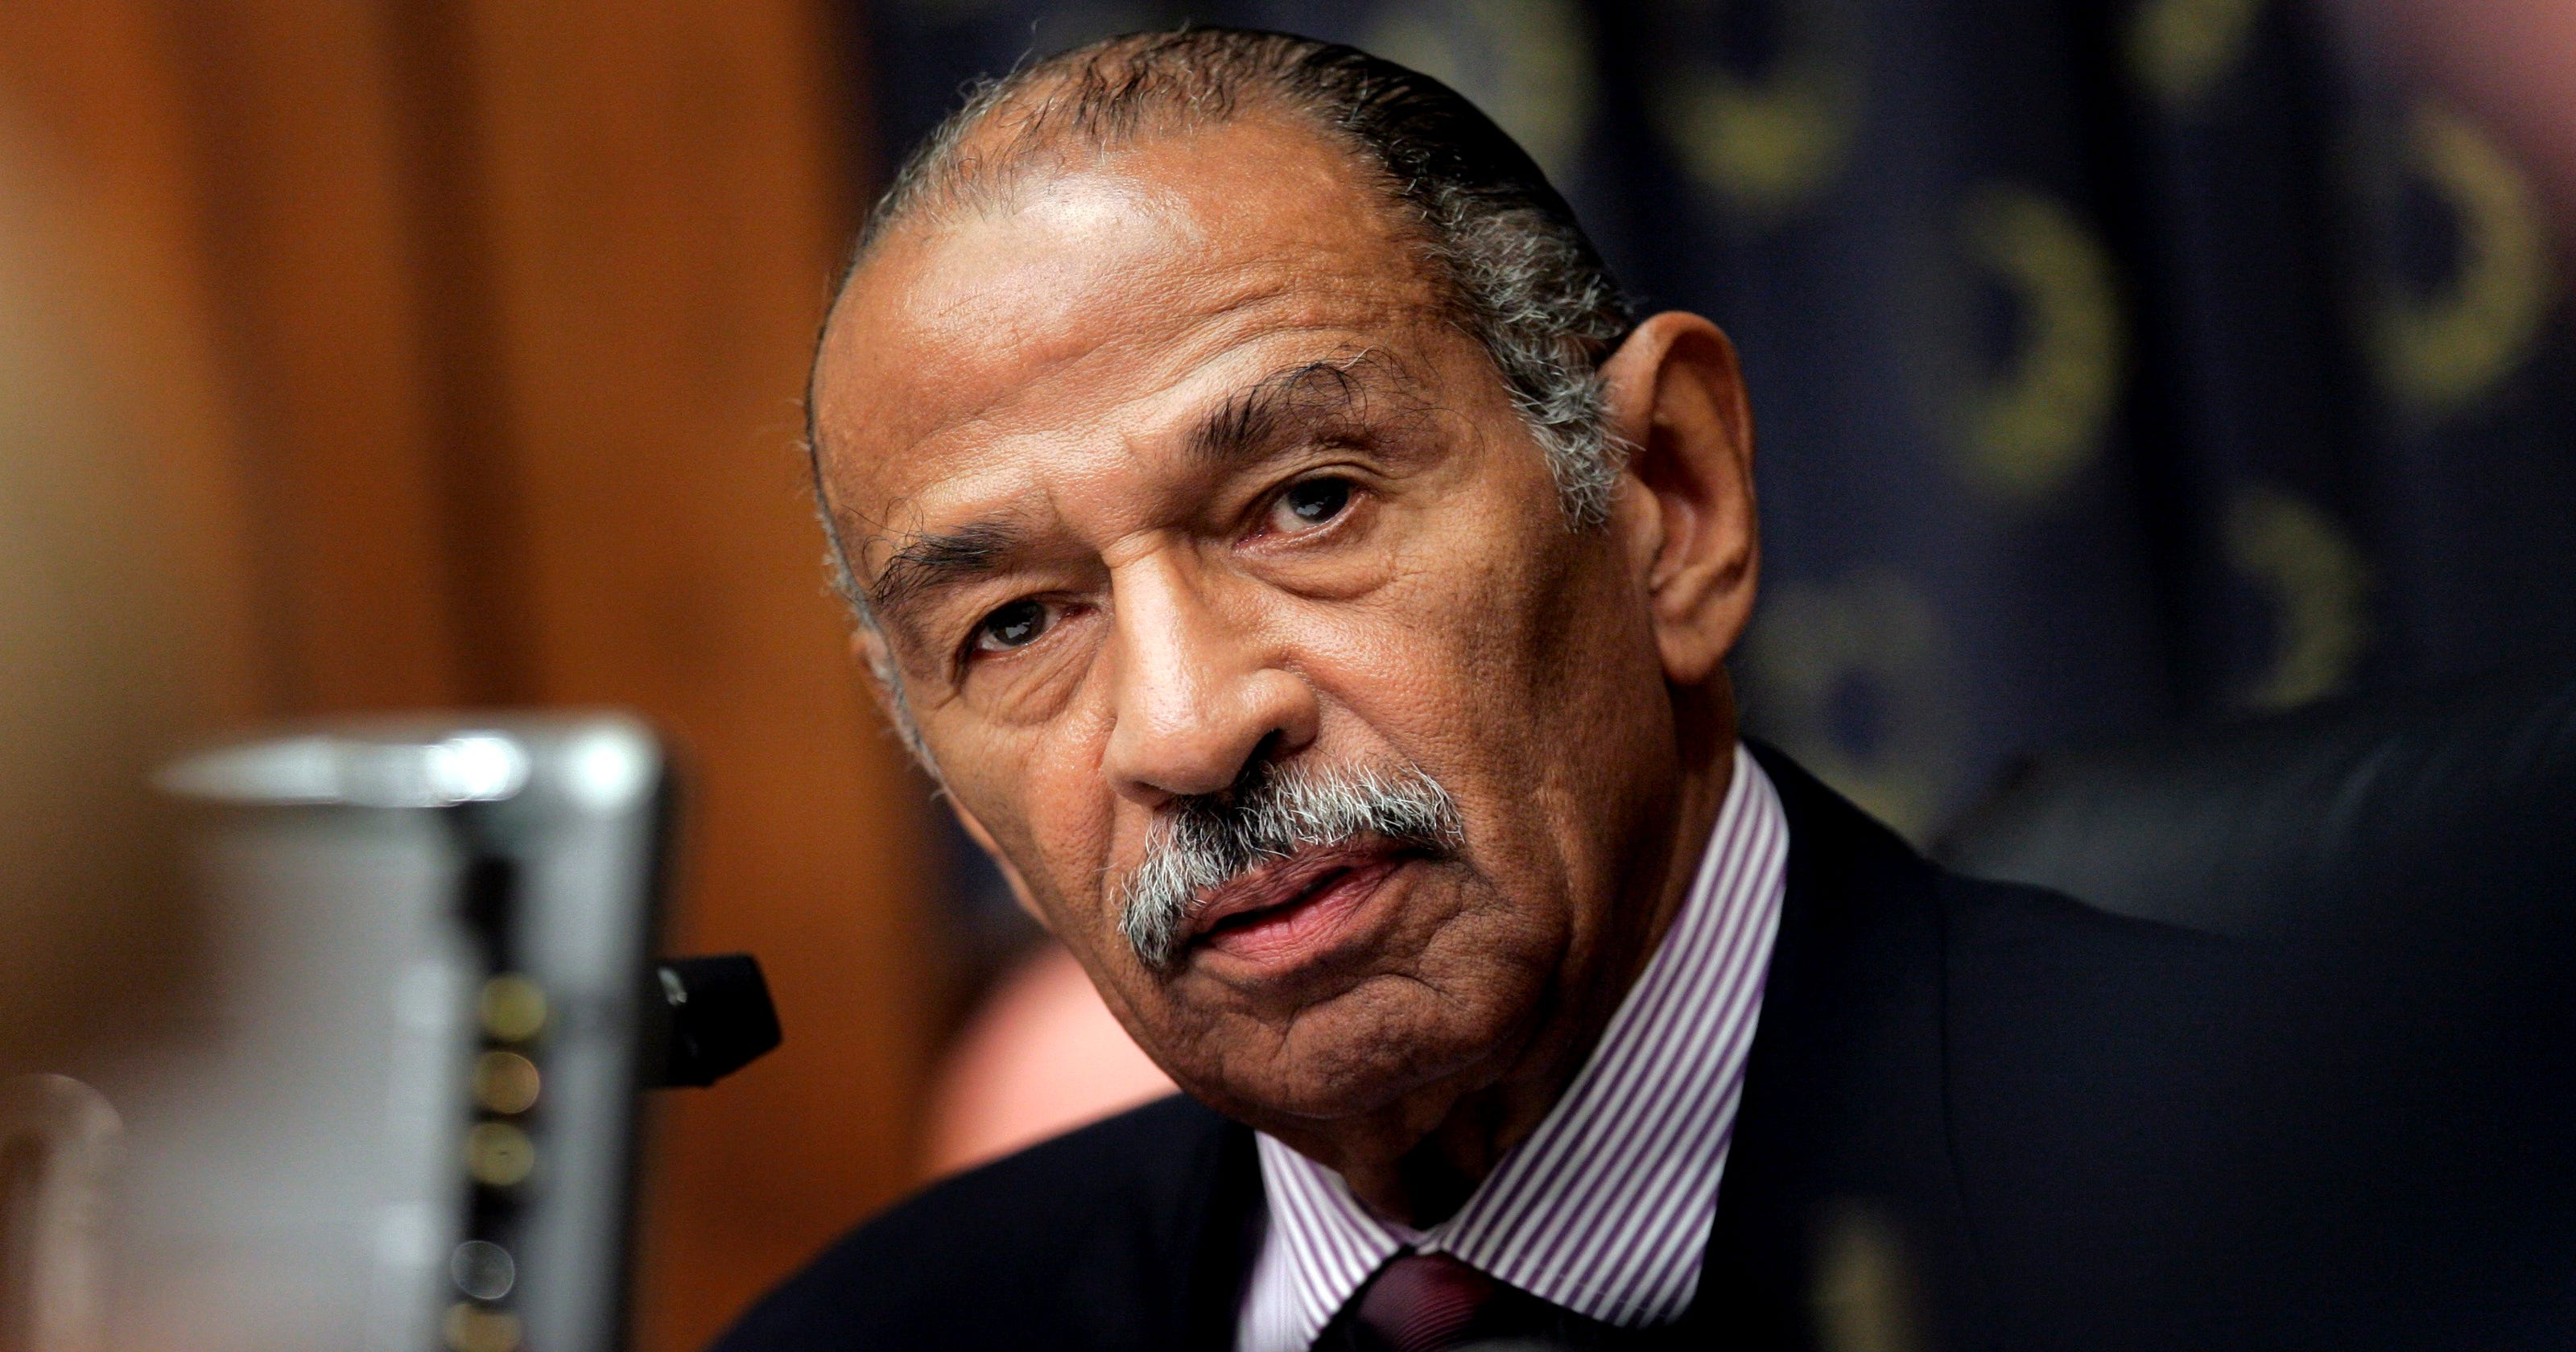 Former U.S. Rep. John Conyers, former dean of Congress, dies at the age of 90